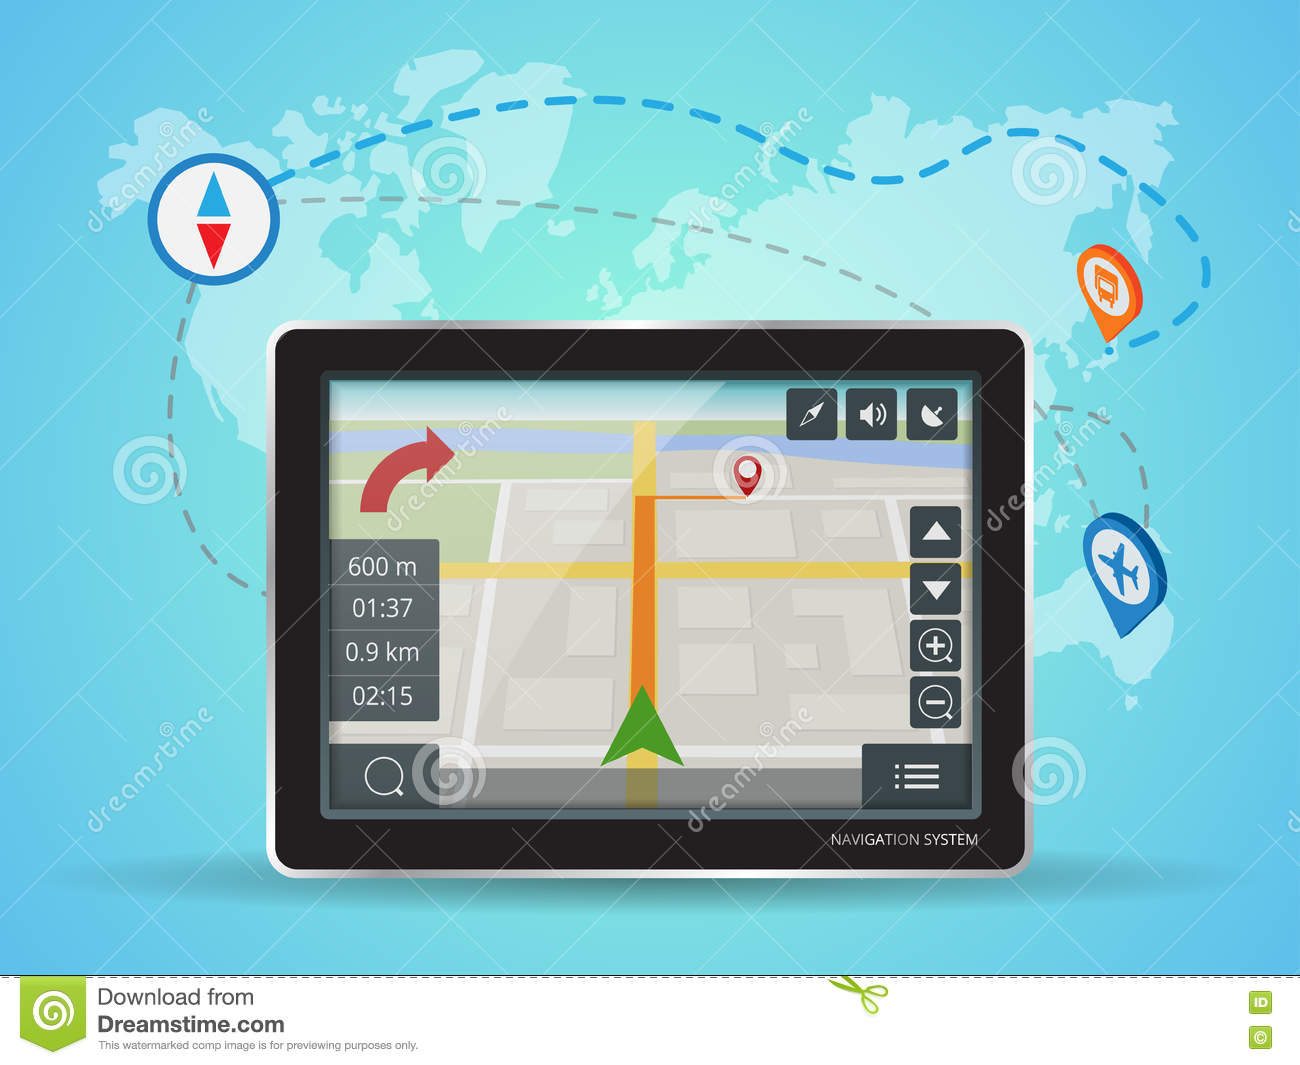 Geolocation gps navigation touch screen tablet world map stock download geolocation gps navigation touch screen tablet world map stock vector illustration of gumiabroncs Image collections